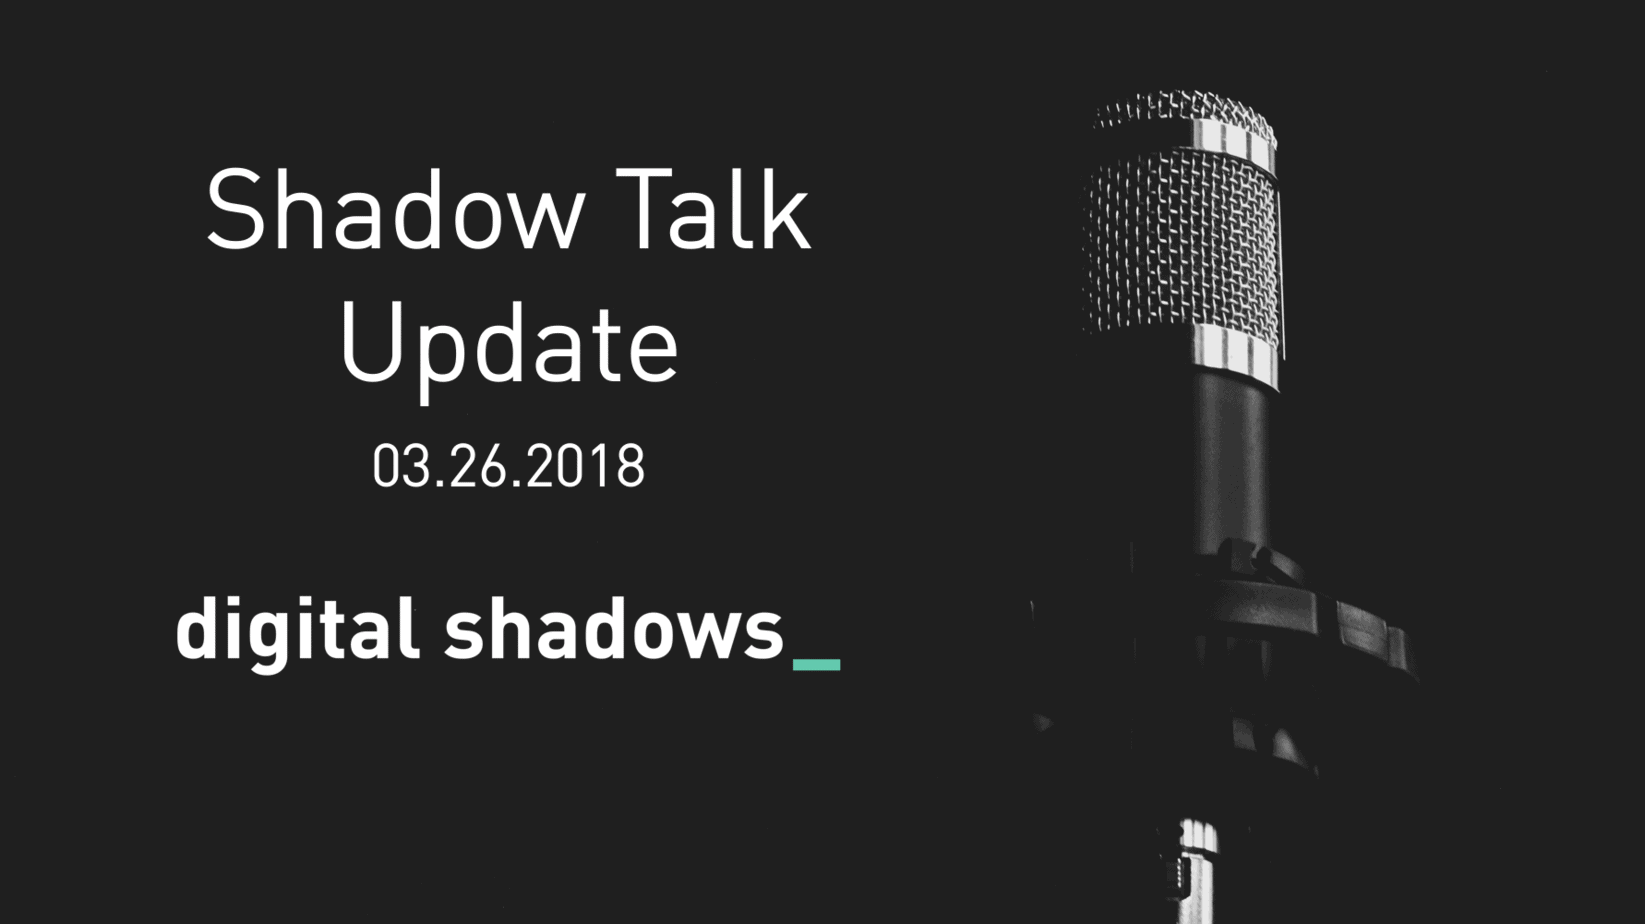 Shadow Talk Update – 03.26.2018